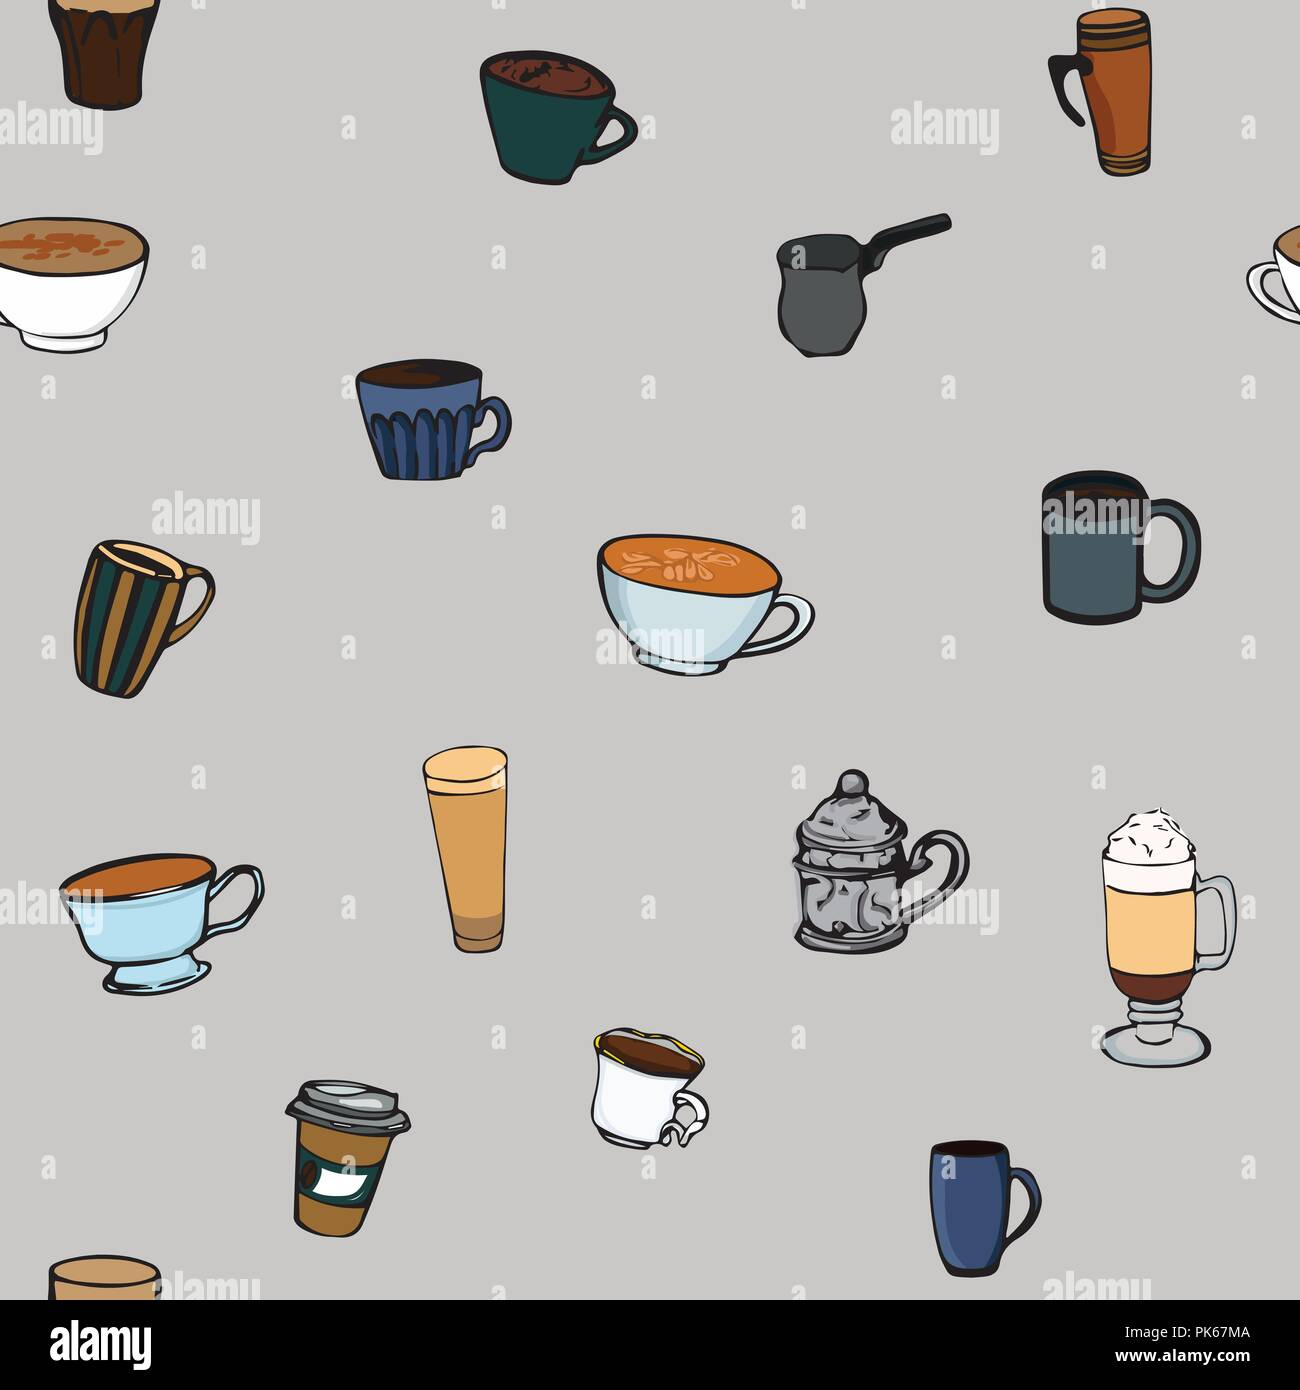 Coffee Cups Seamless Pattern Hot Drinks Vector Illustration Coffee Mugs Seamless Background Stock Vector Image Art Alamy